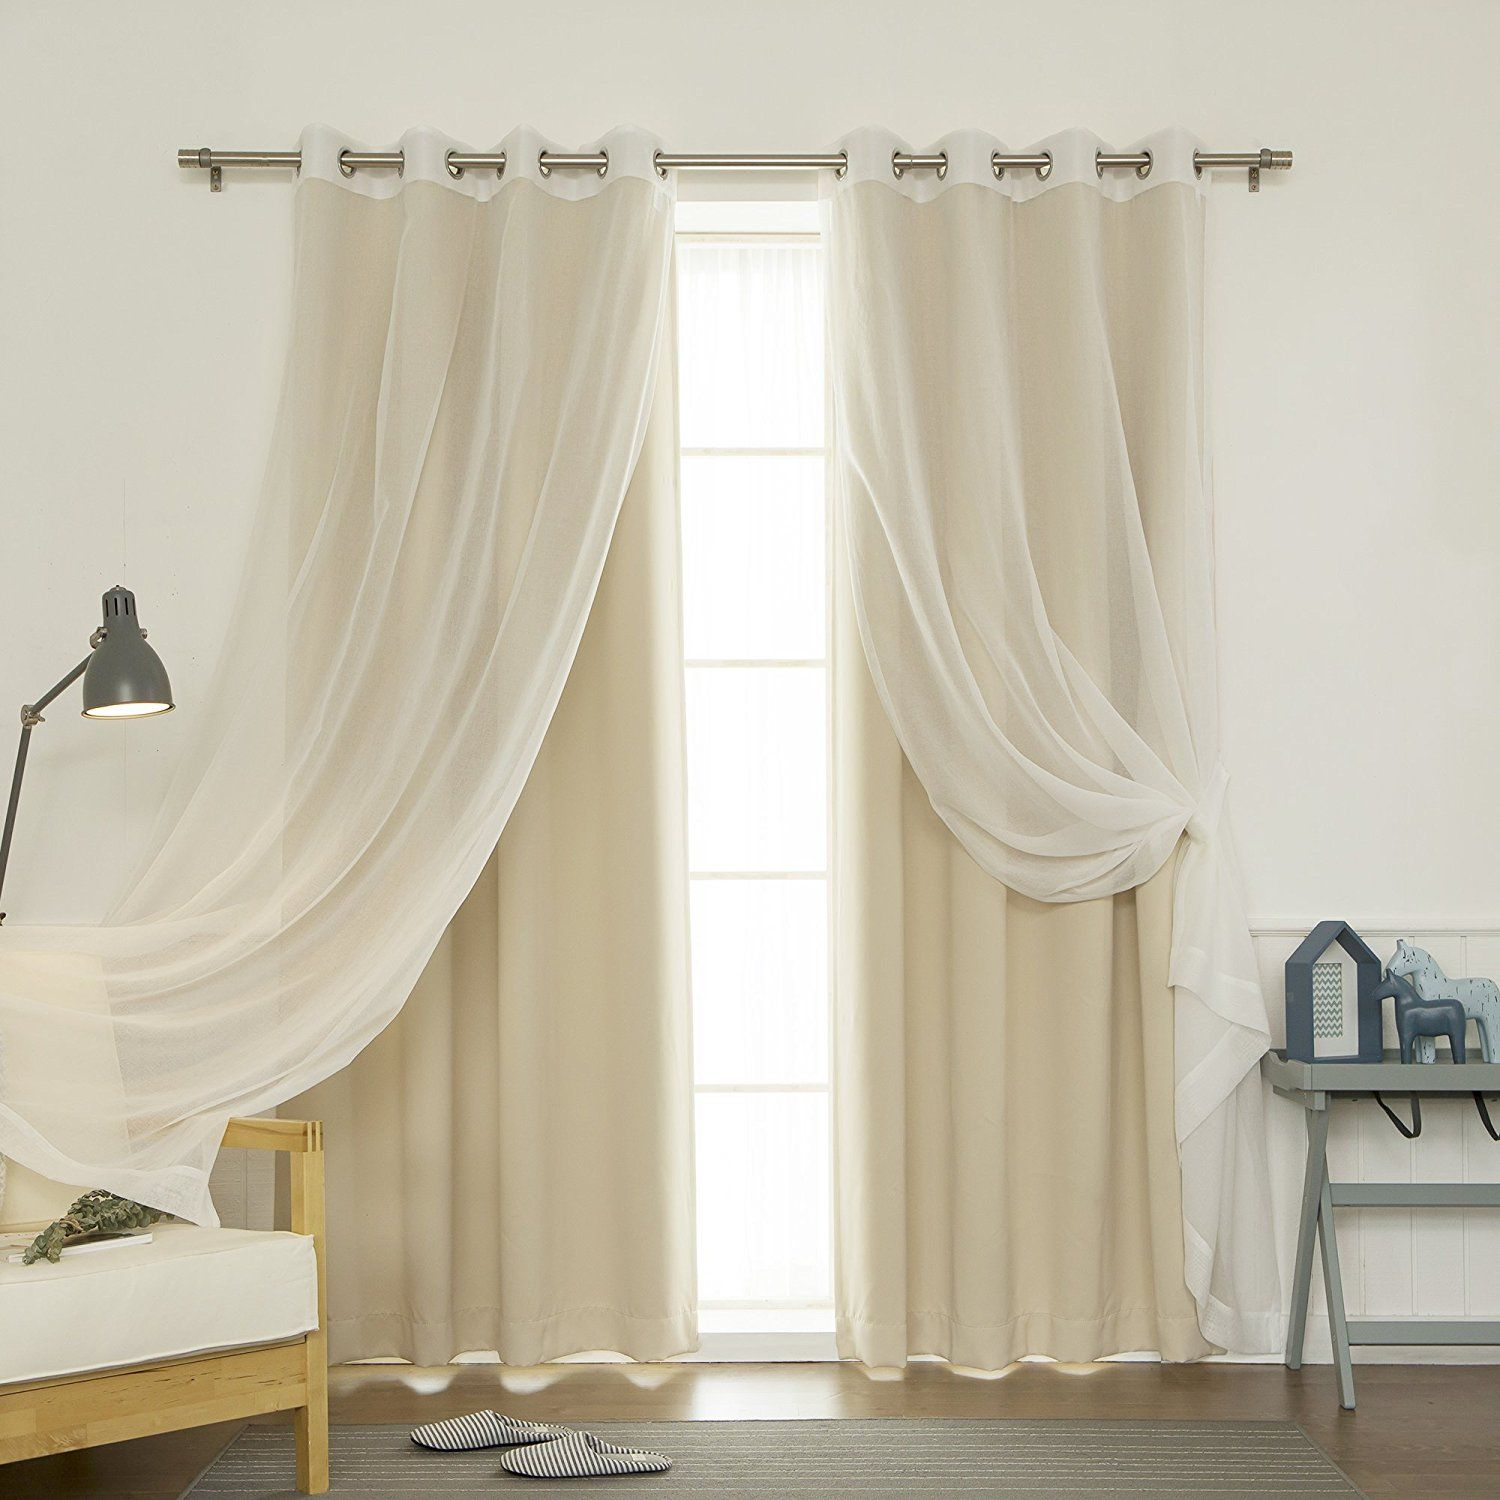 Best Home Fashion Mix And Match Muji Sheer And Blackout 4 Piece